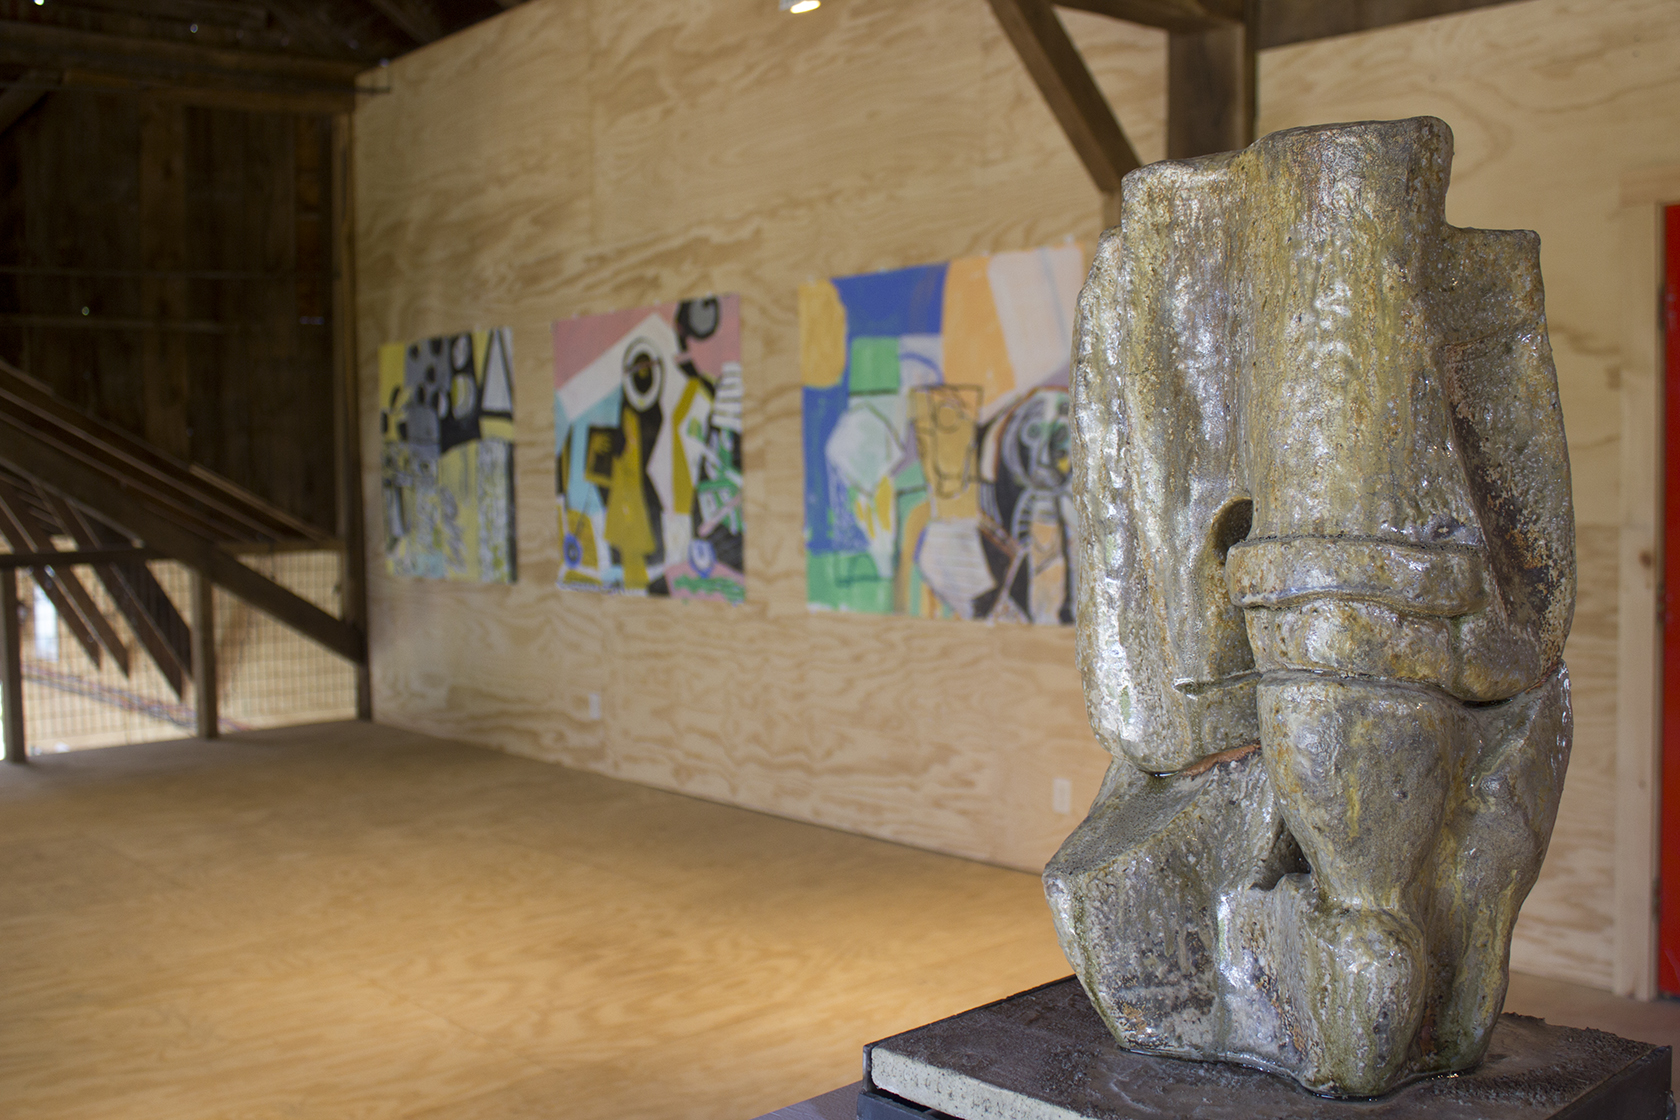 Dan Greenfeld and Anne Richter in Barn 1, 2nd Floor. 2014